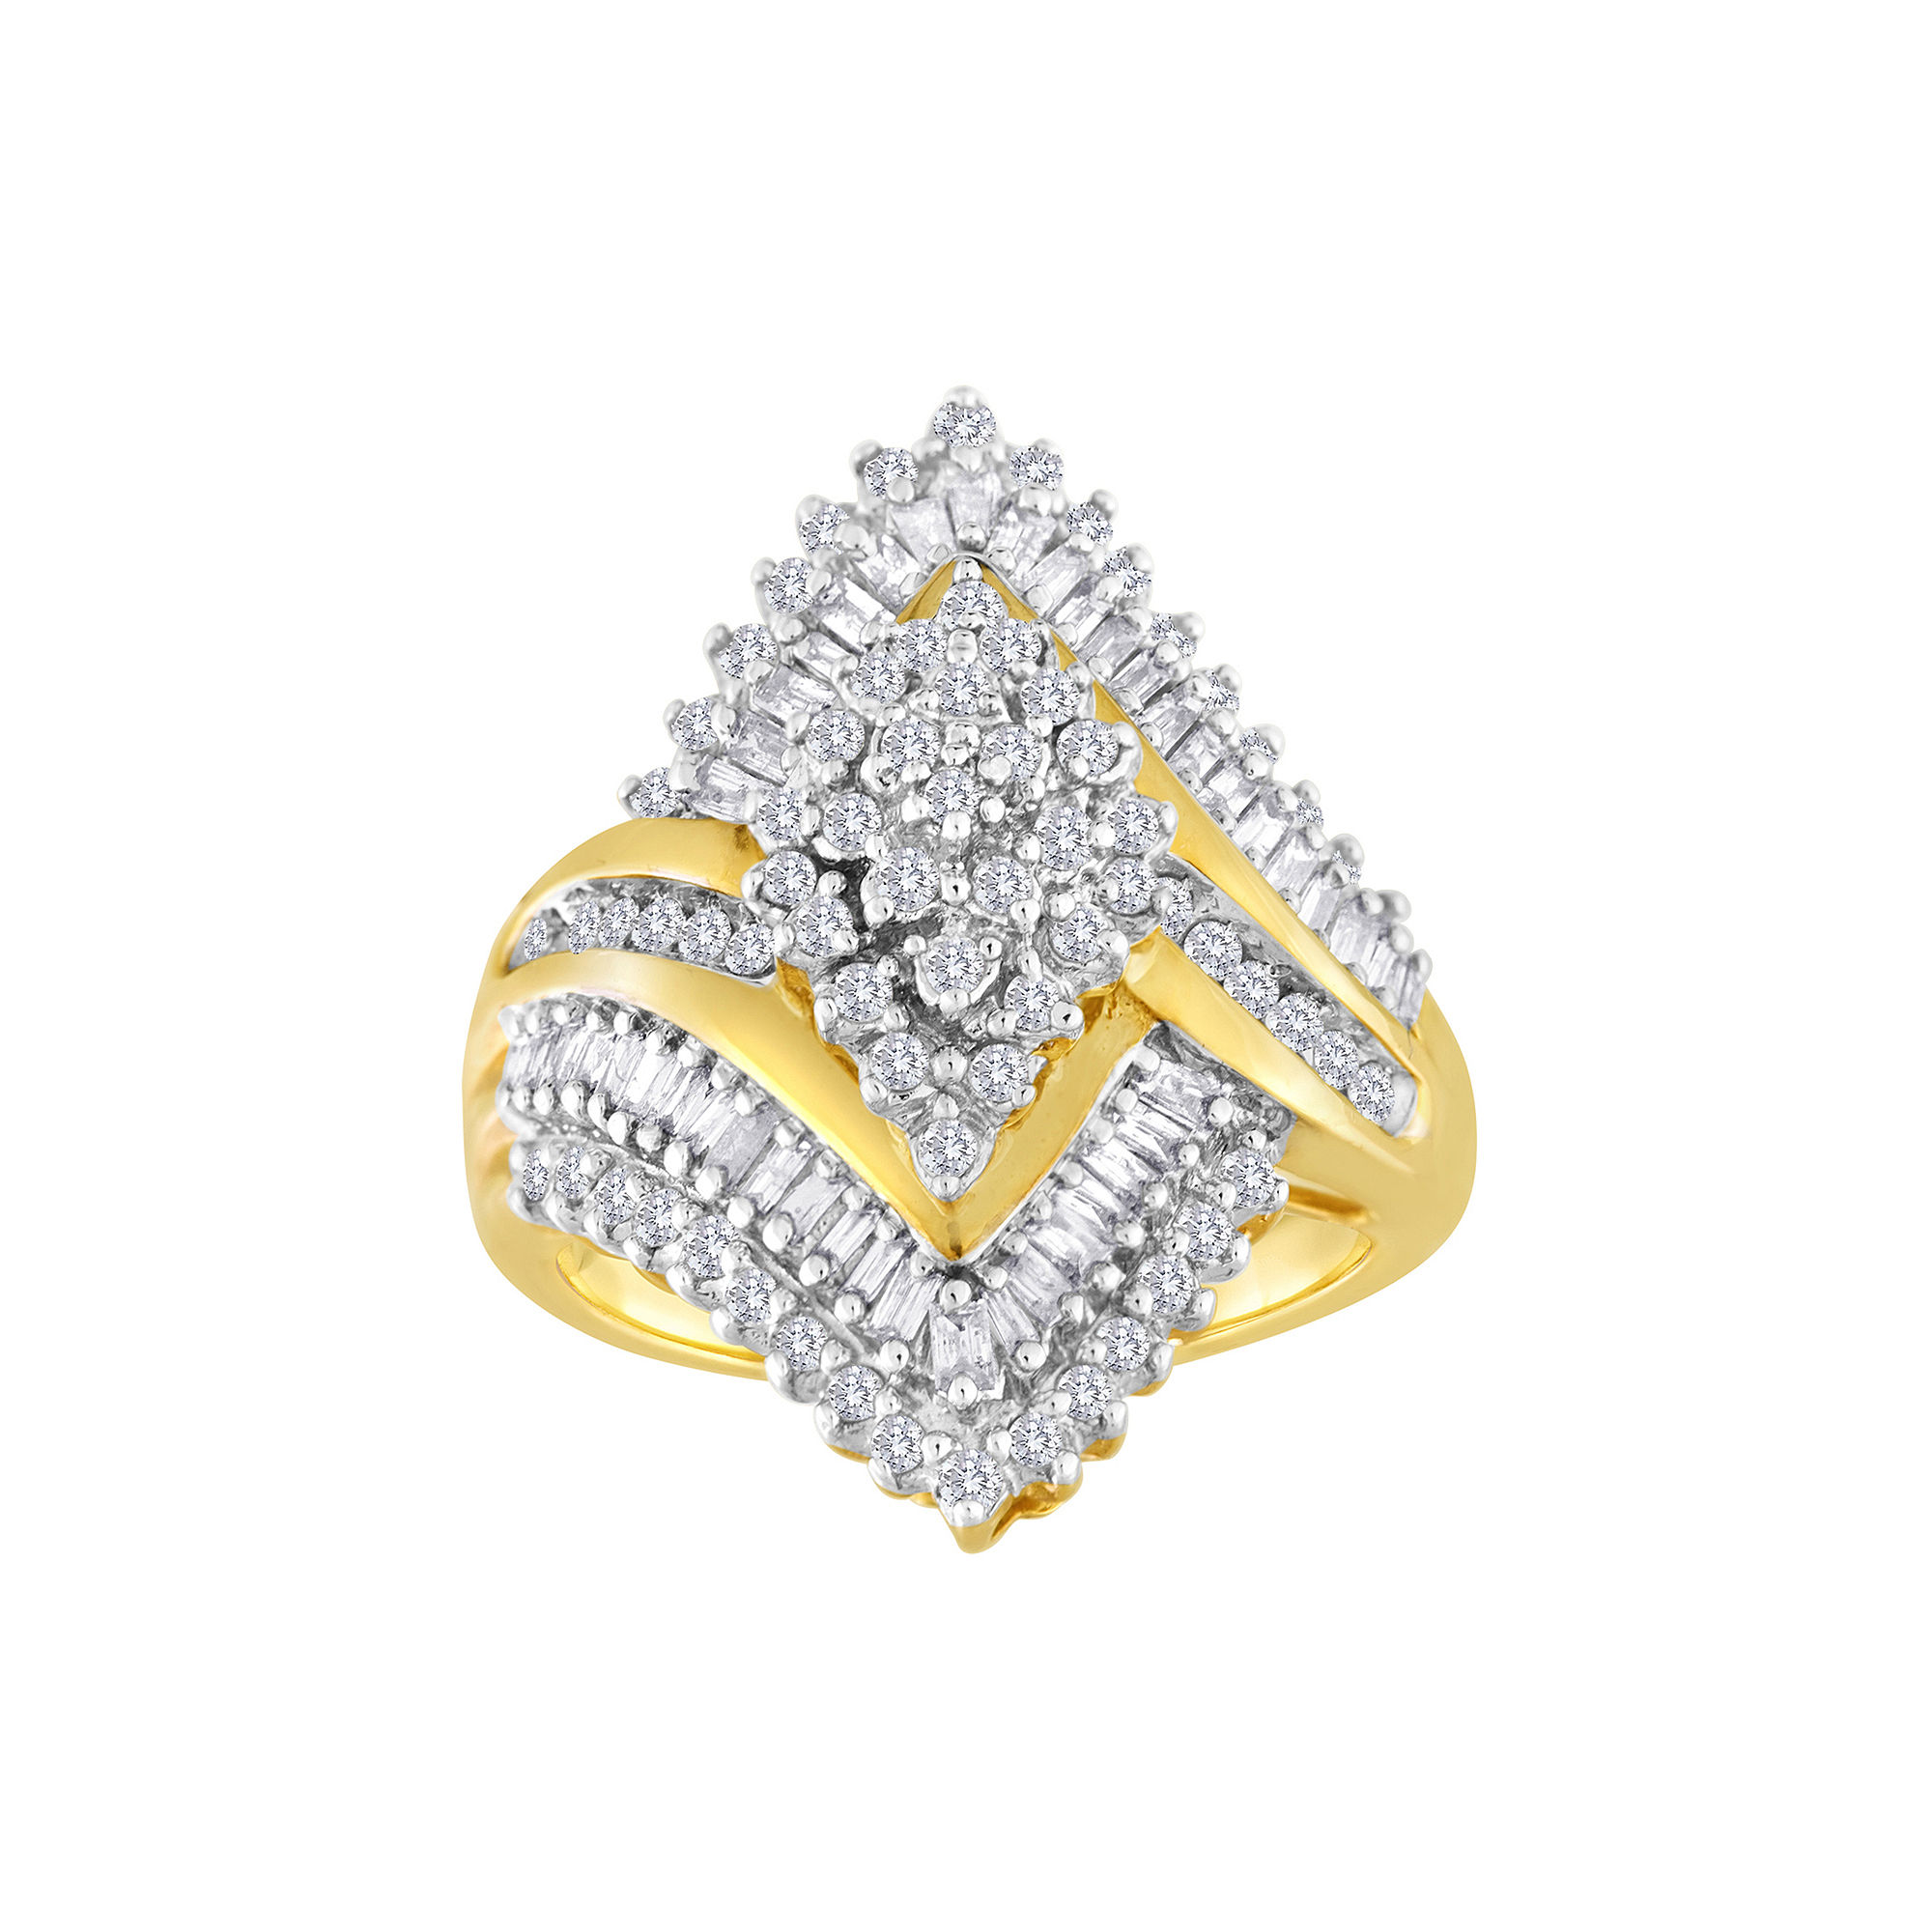 1 CT. T.W. Diamond 10K Yellow Gold Marquise-Shaped Cocktail Ring